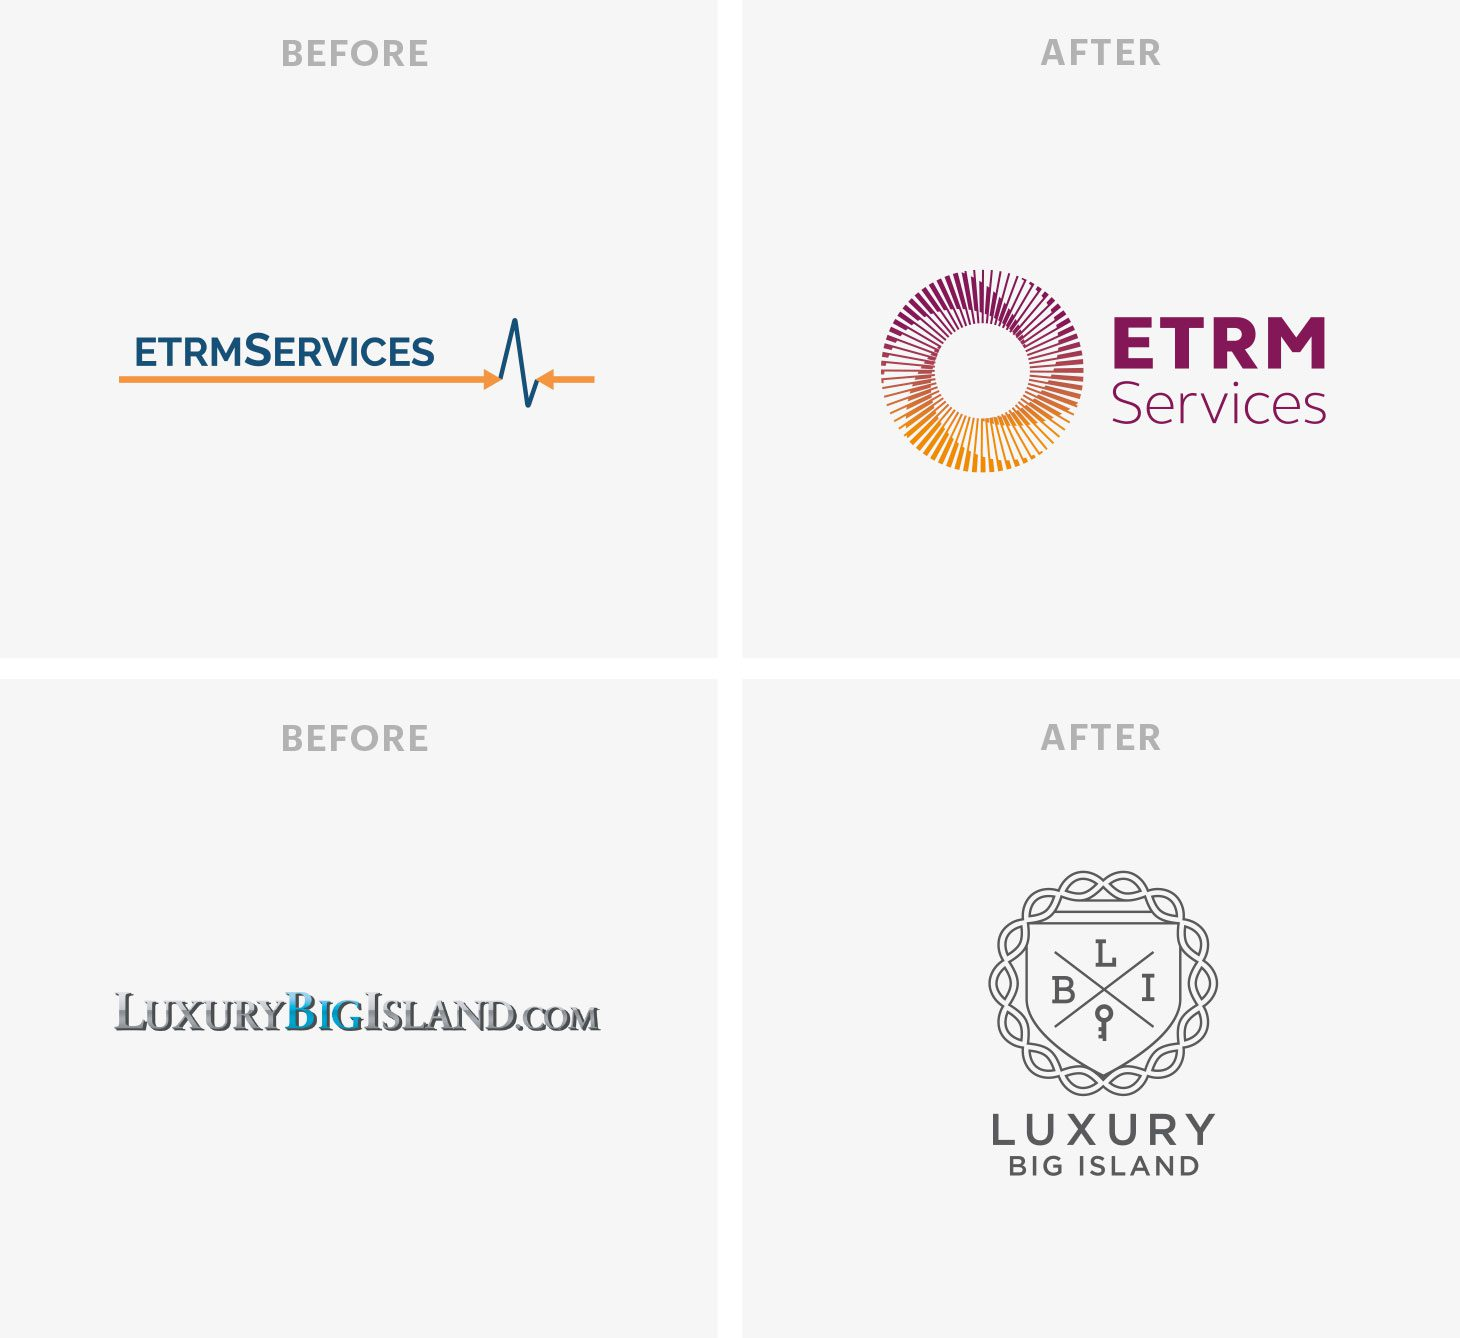 Logos Before and After